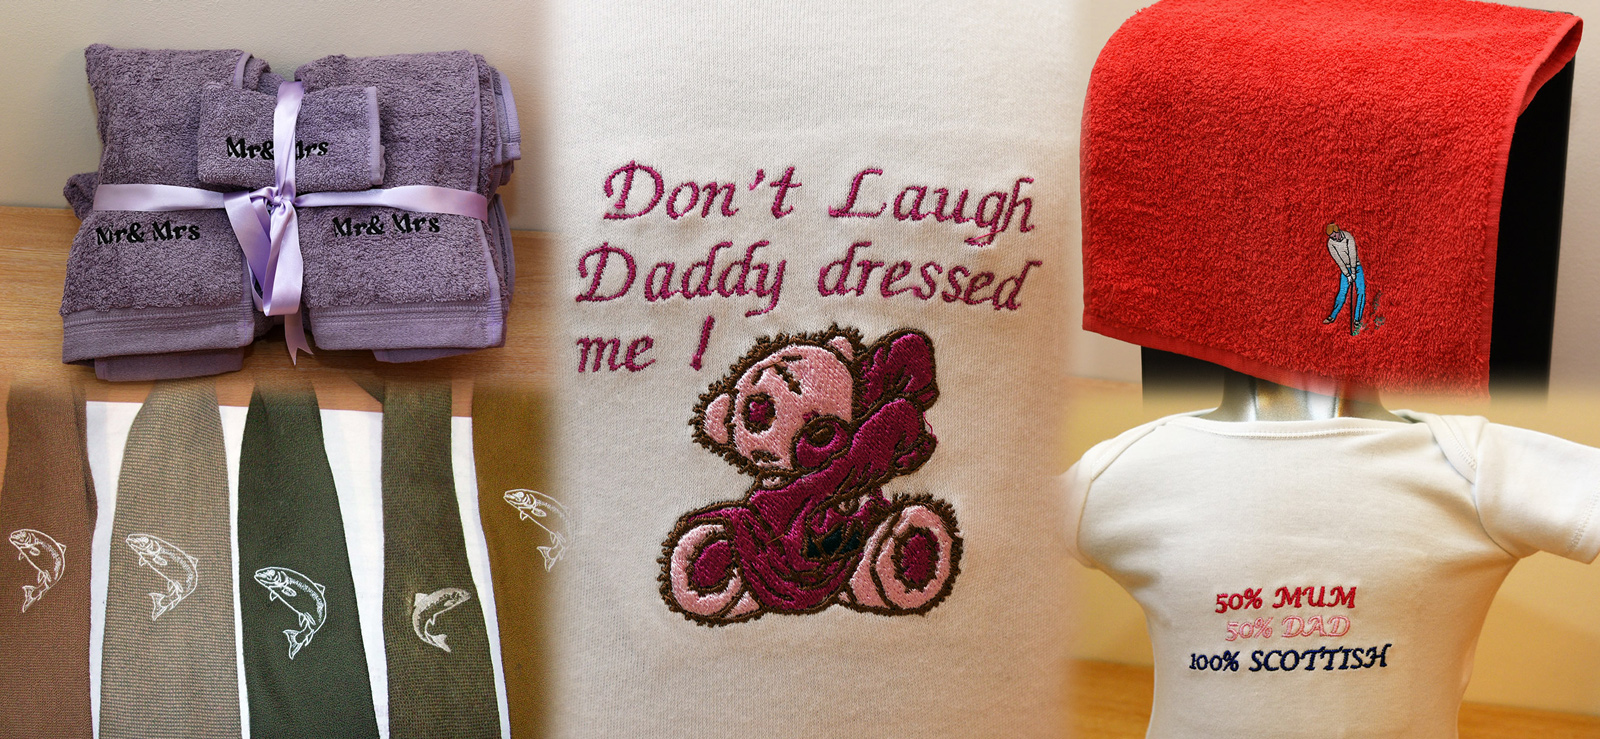 IN STITCHES PERSONALISED EMBROIDERY ELGIN MORAY